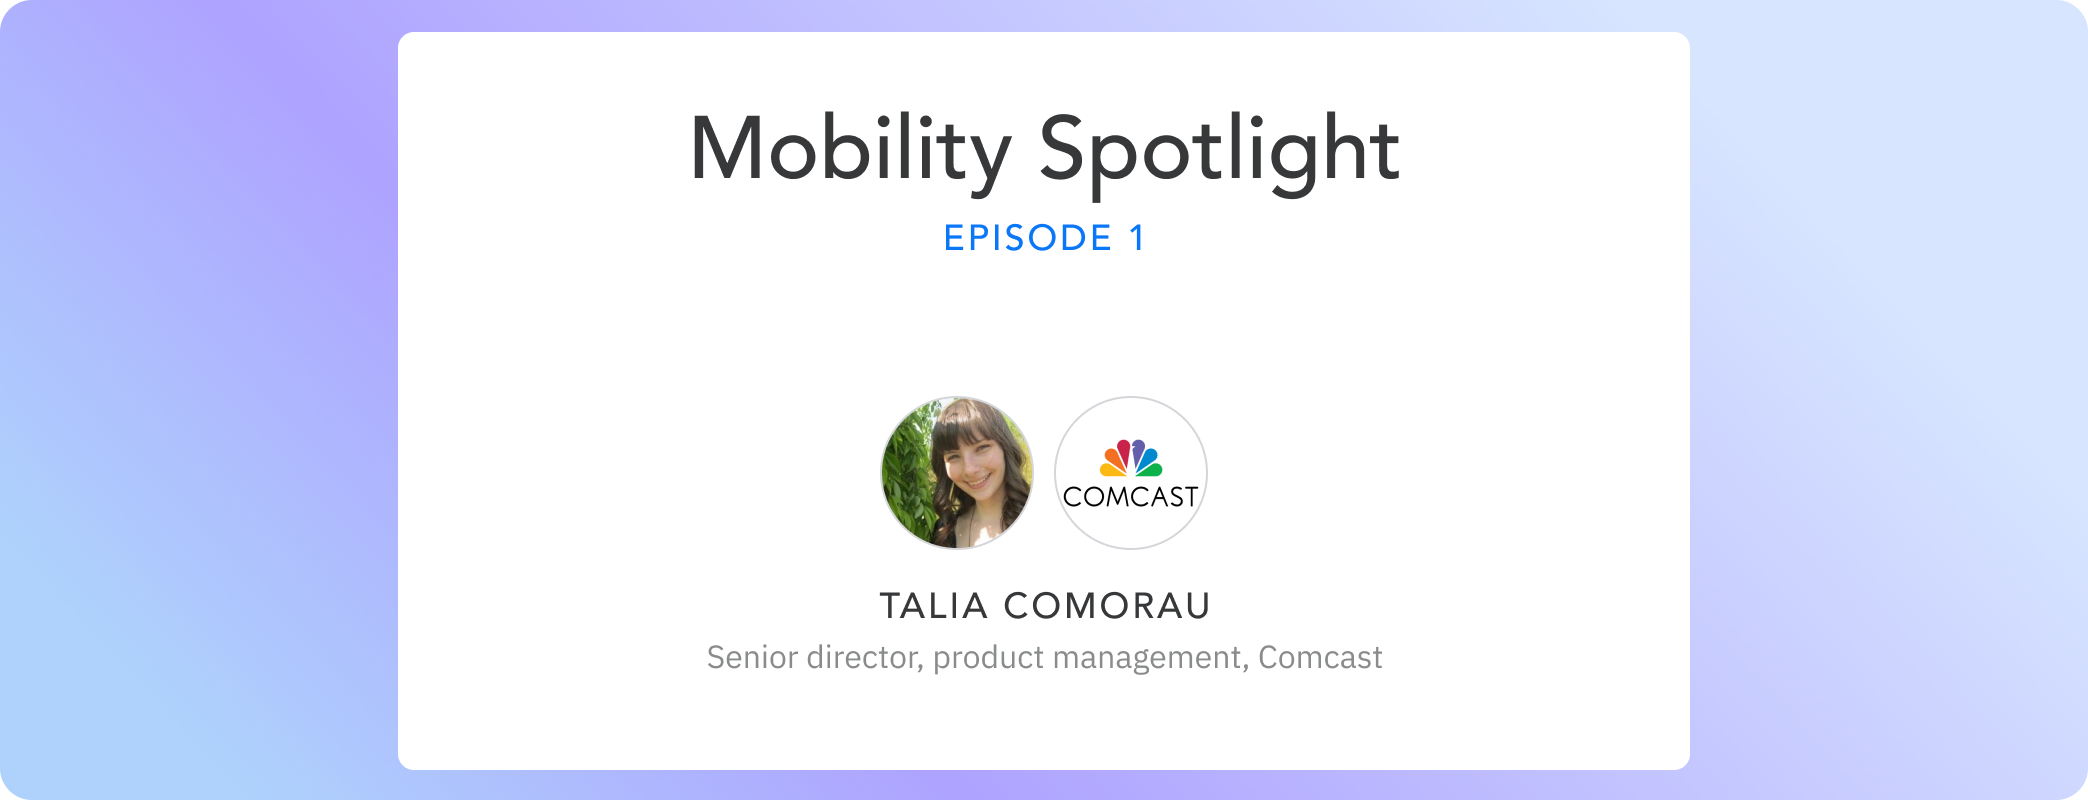 Episode 01: Talia Comorau's journey from Client Services to Product Management